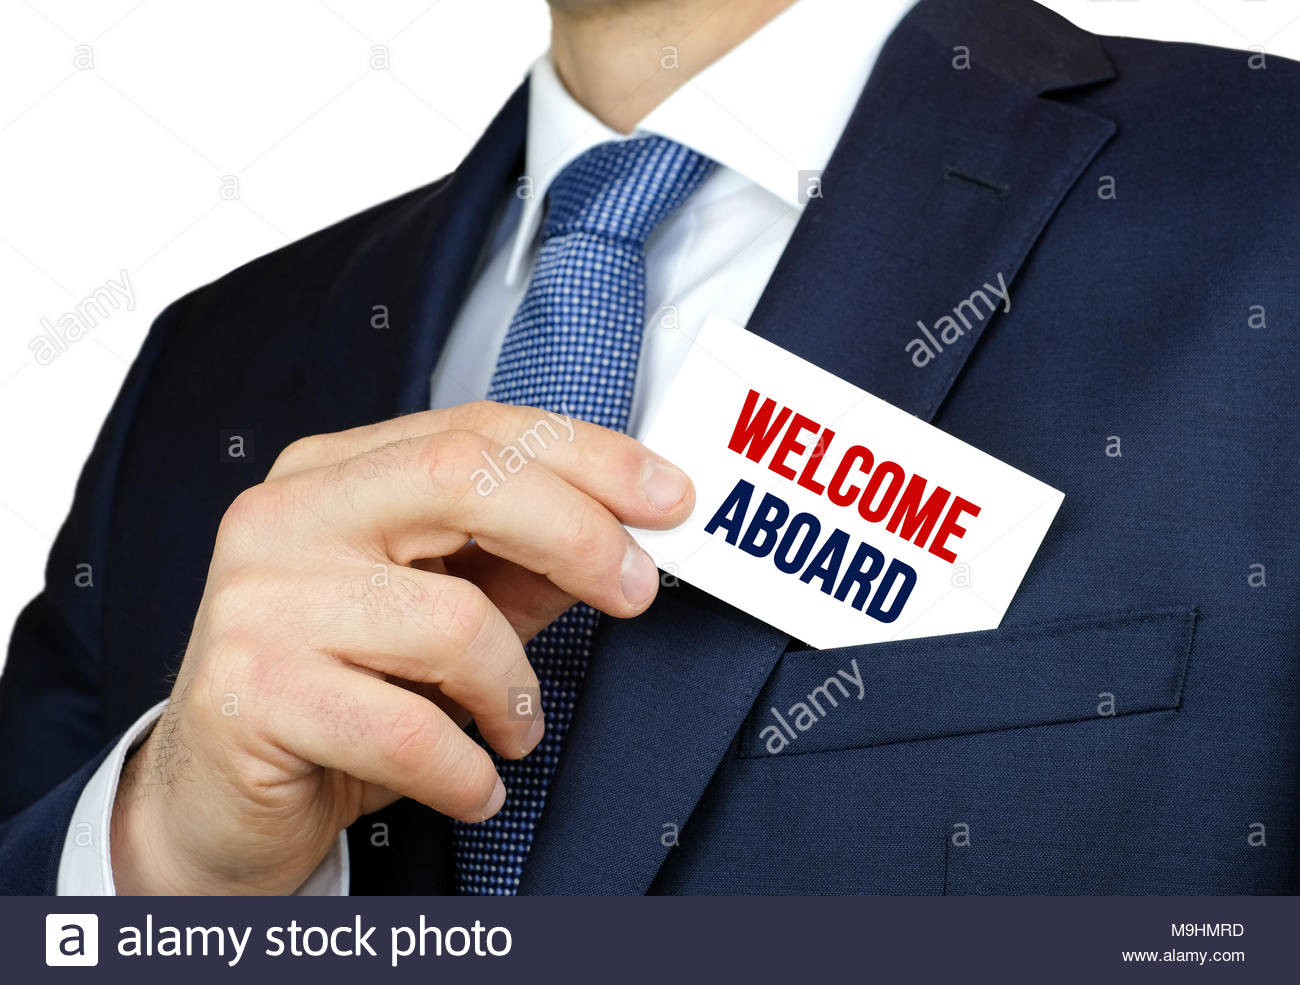 Welcome Aboard Teamwork Concept Stock Photo 178025105 Alamy